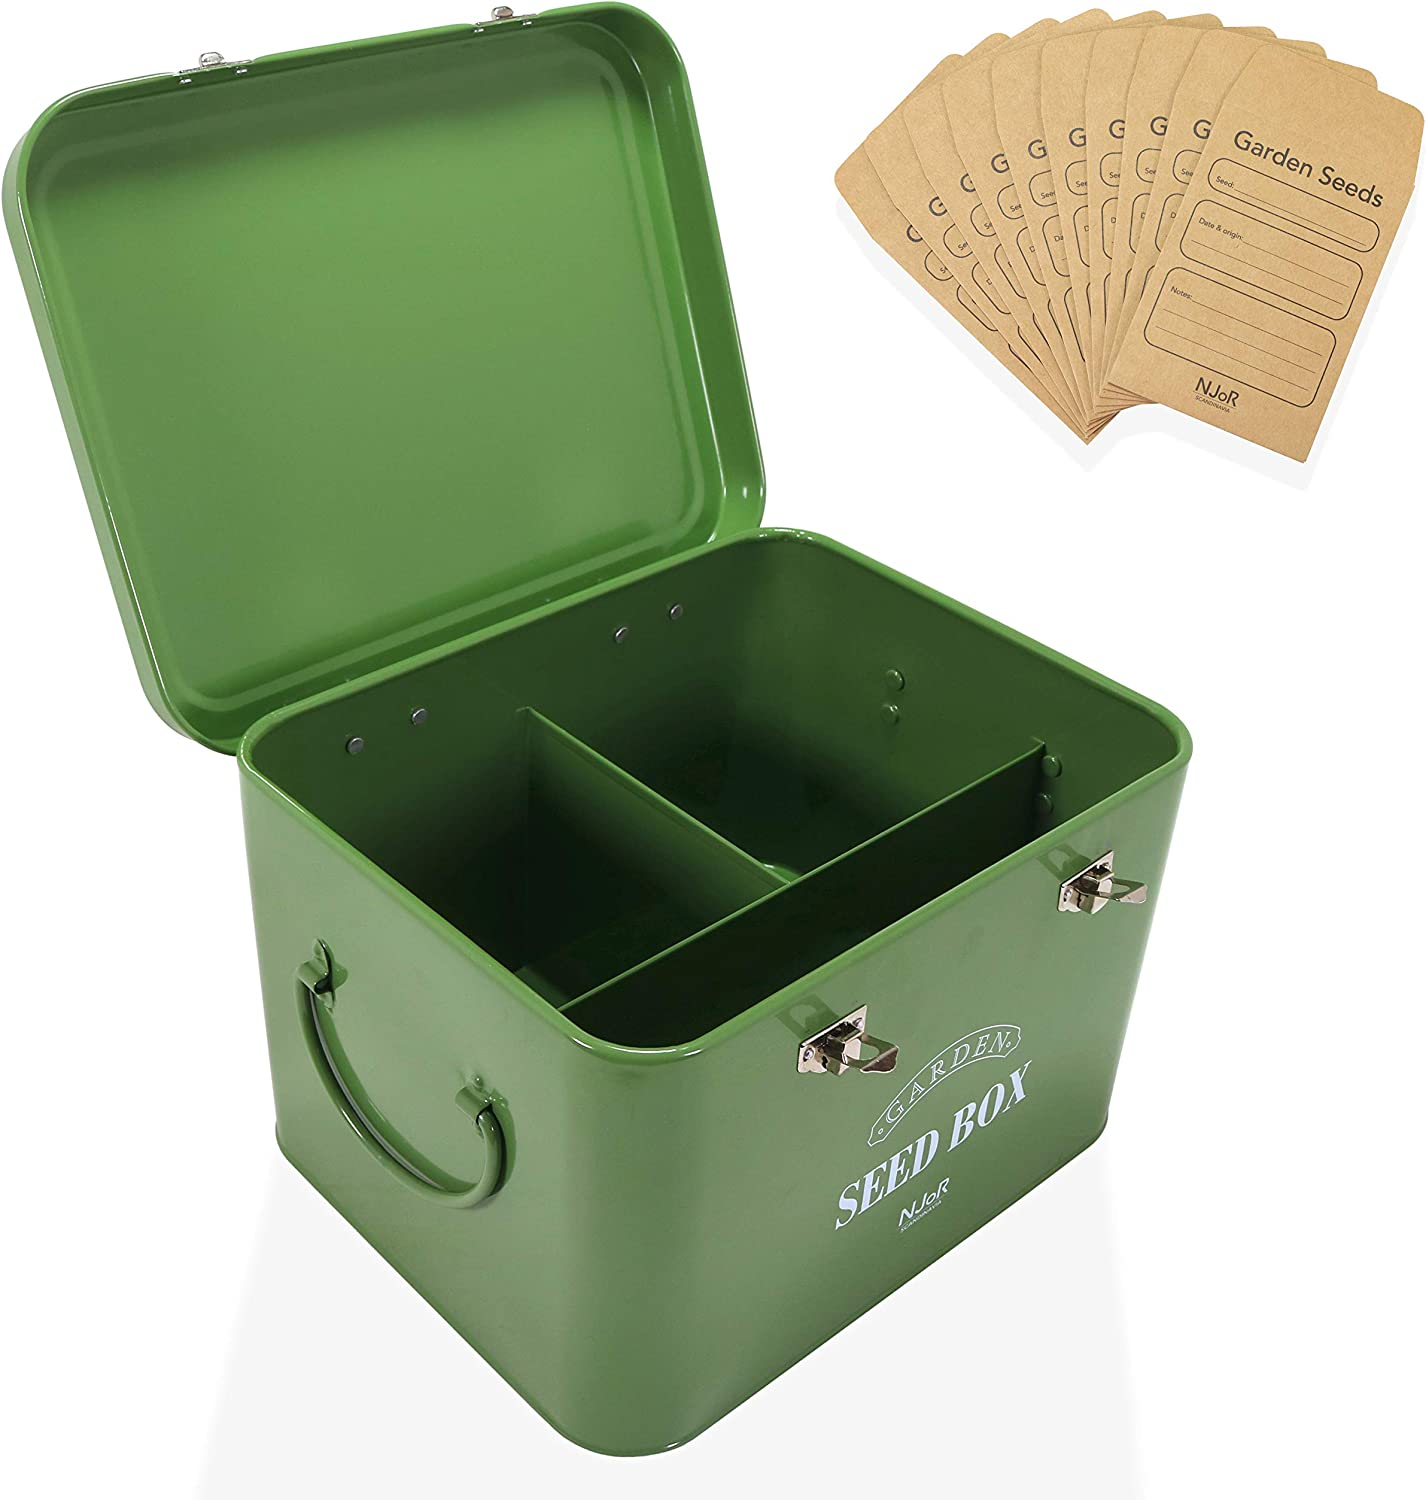 Steel Seed Packet Storage Box Organizer in Green. Robust Seed Package Container for Seeds and Bulbs Complete with 10 Seed Envelopes